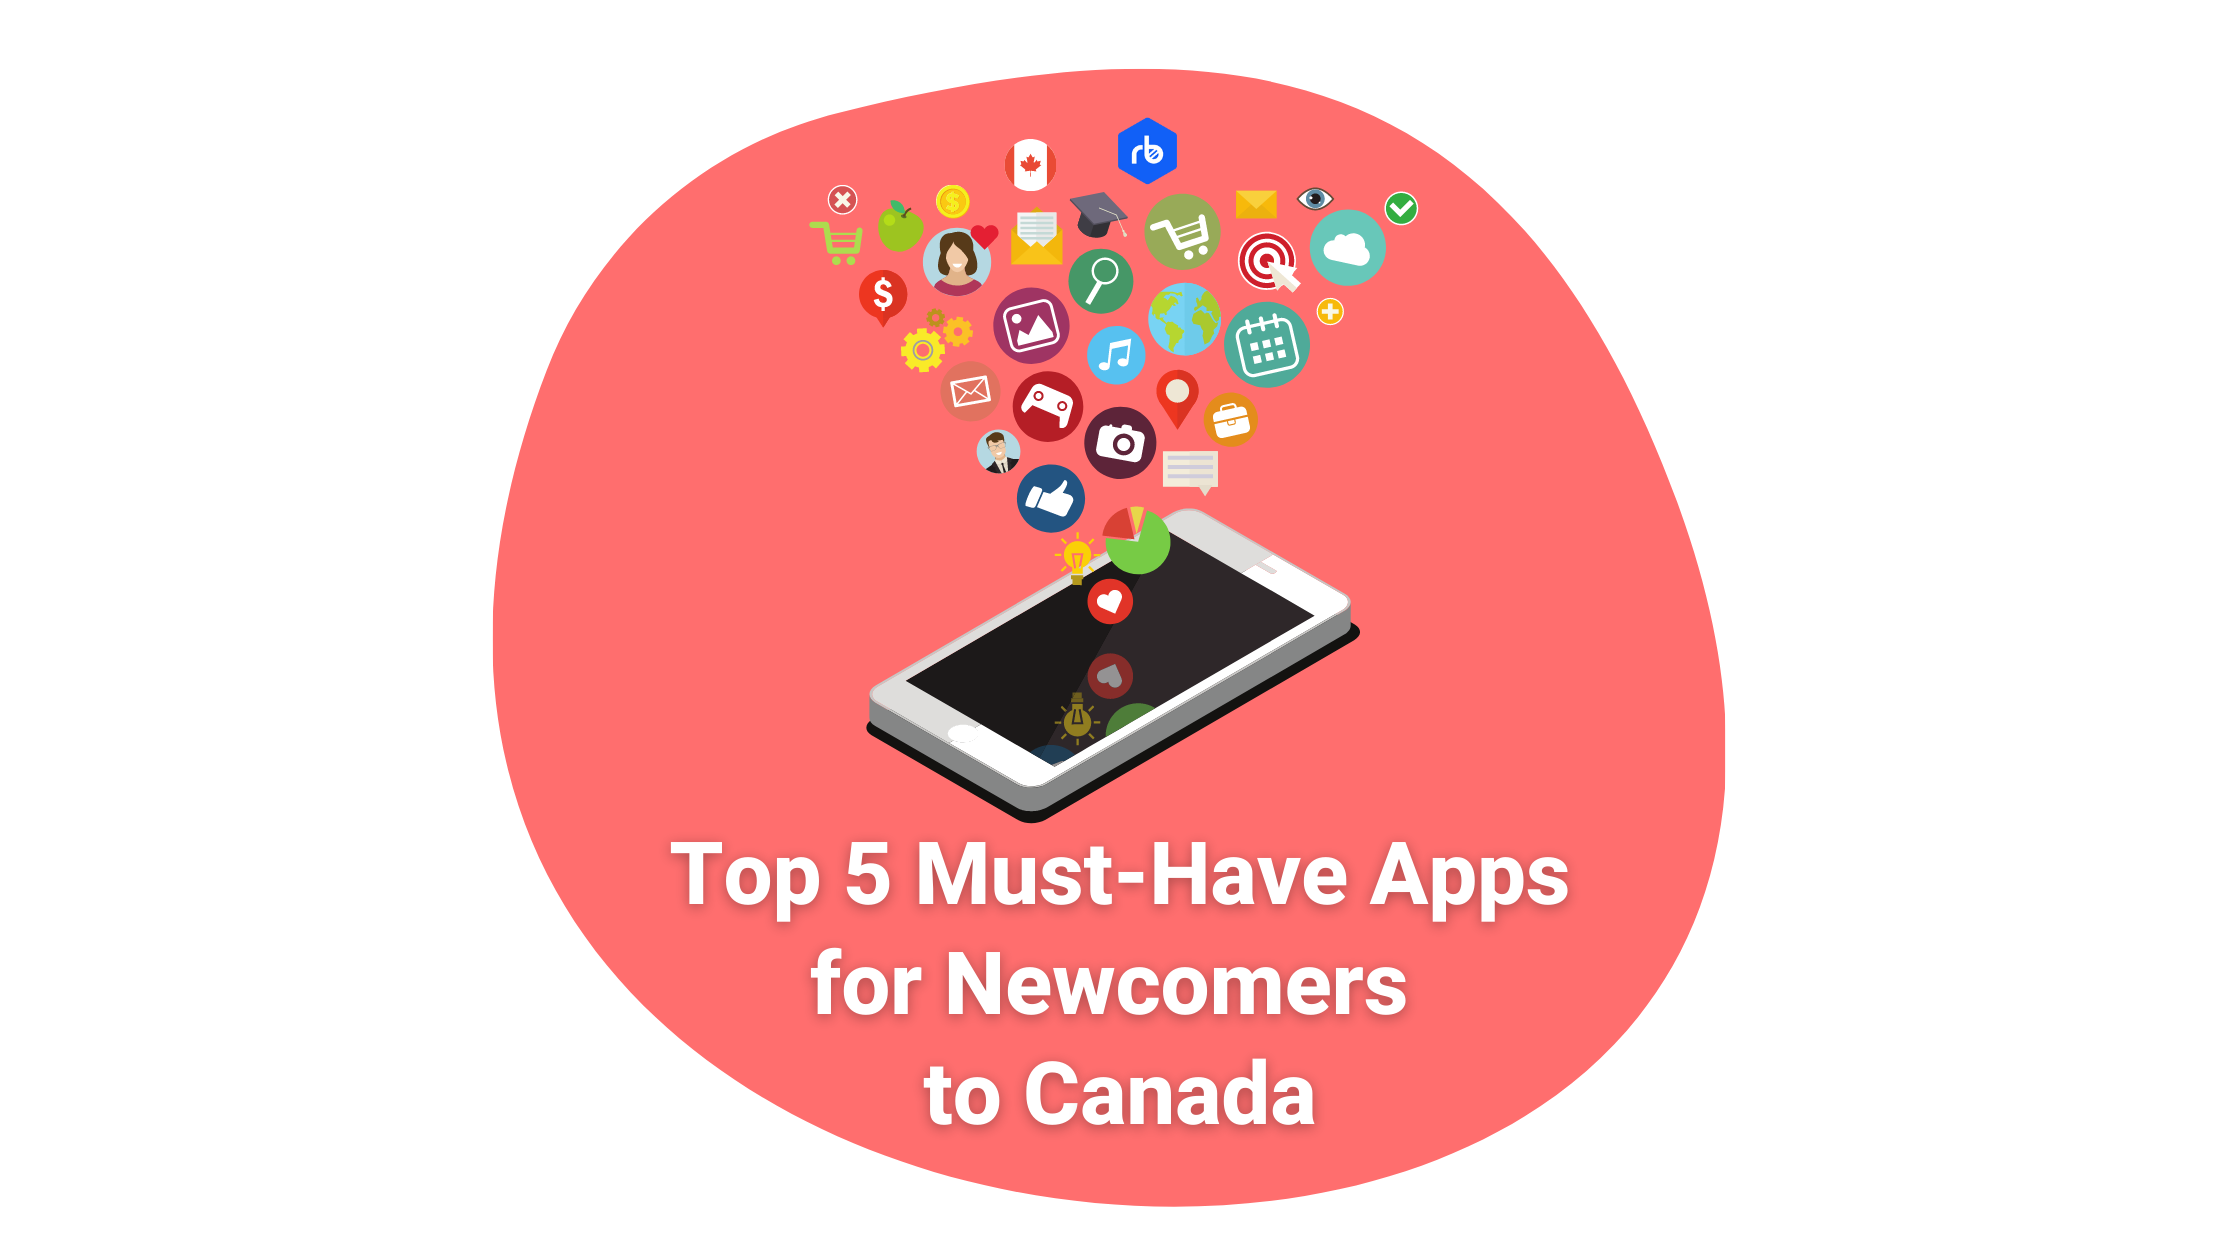 Top 5 Apps for newcomers